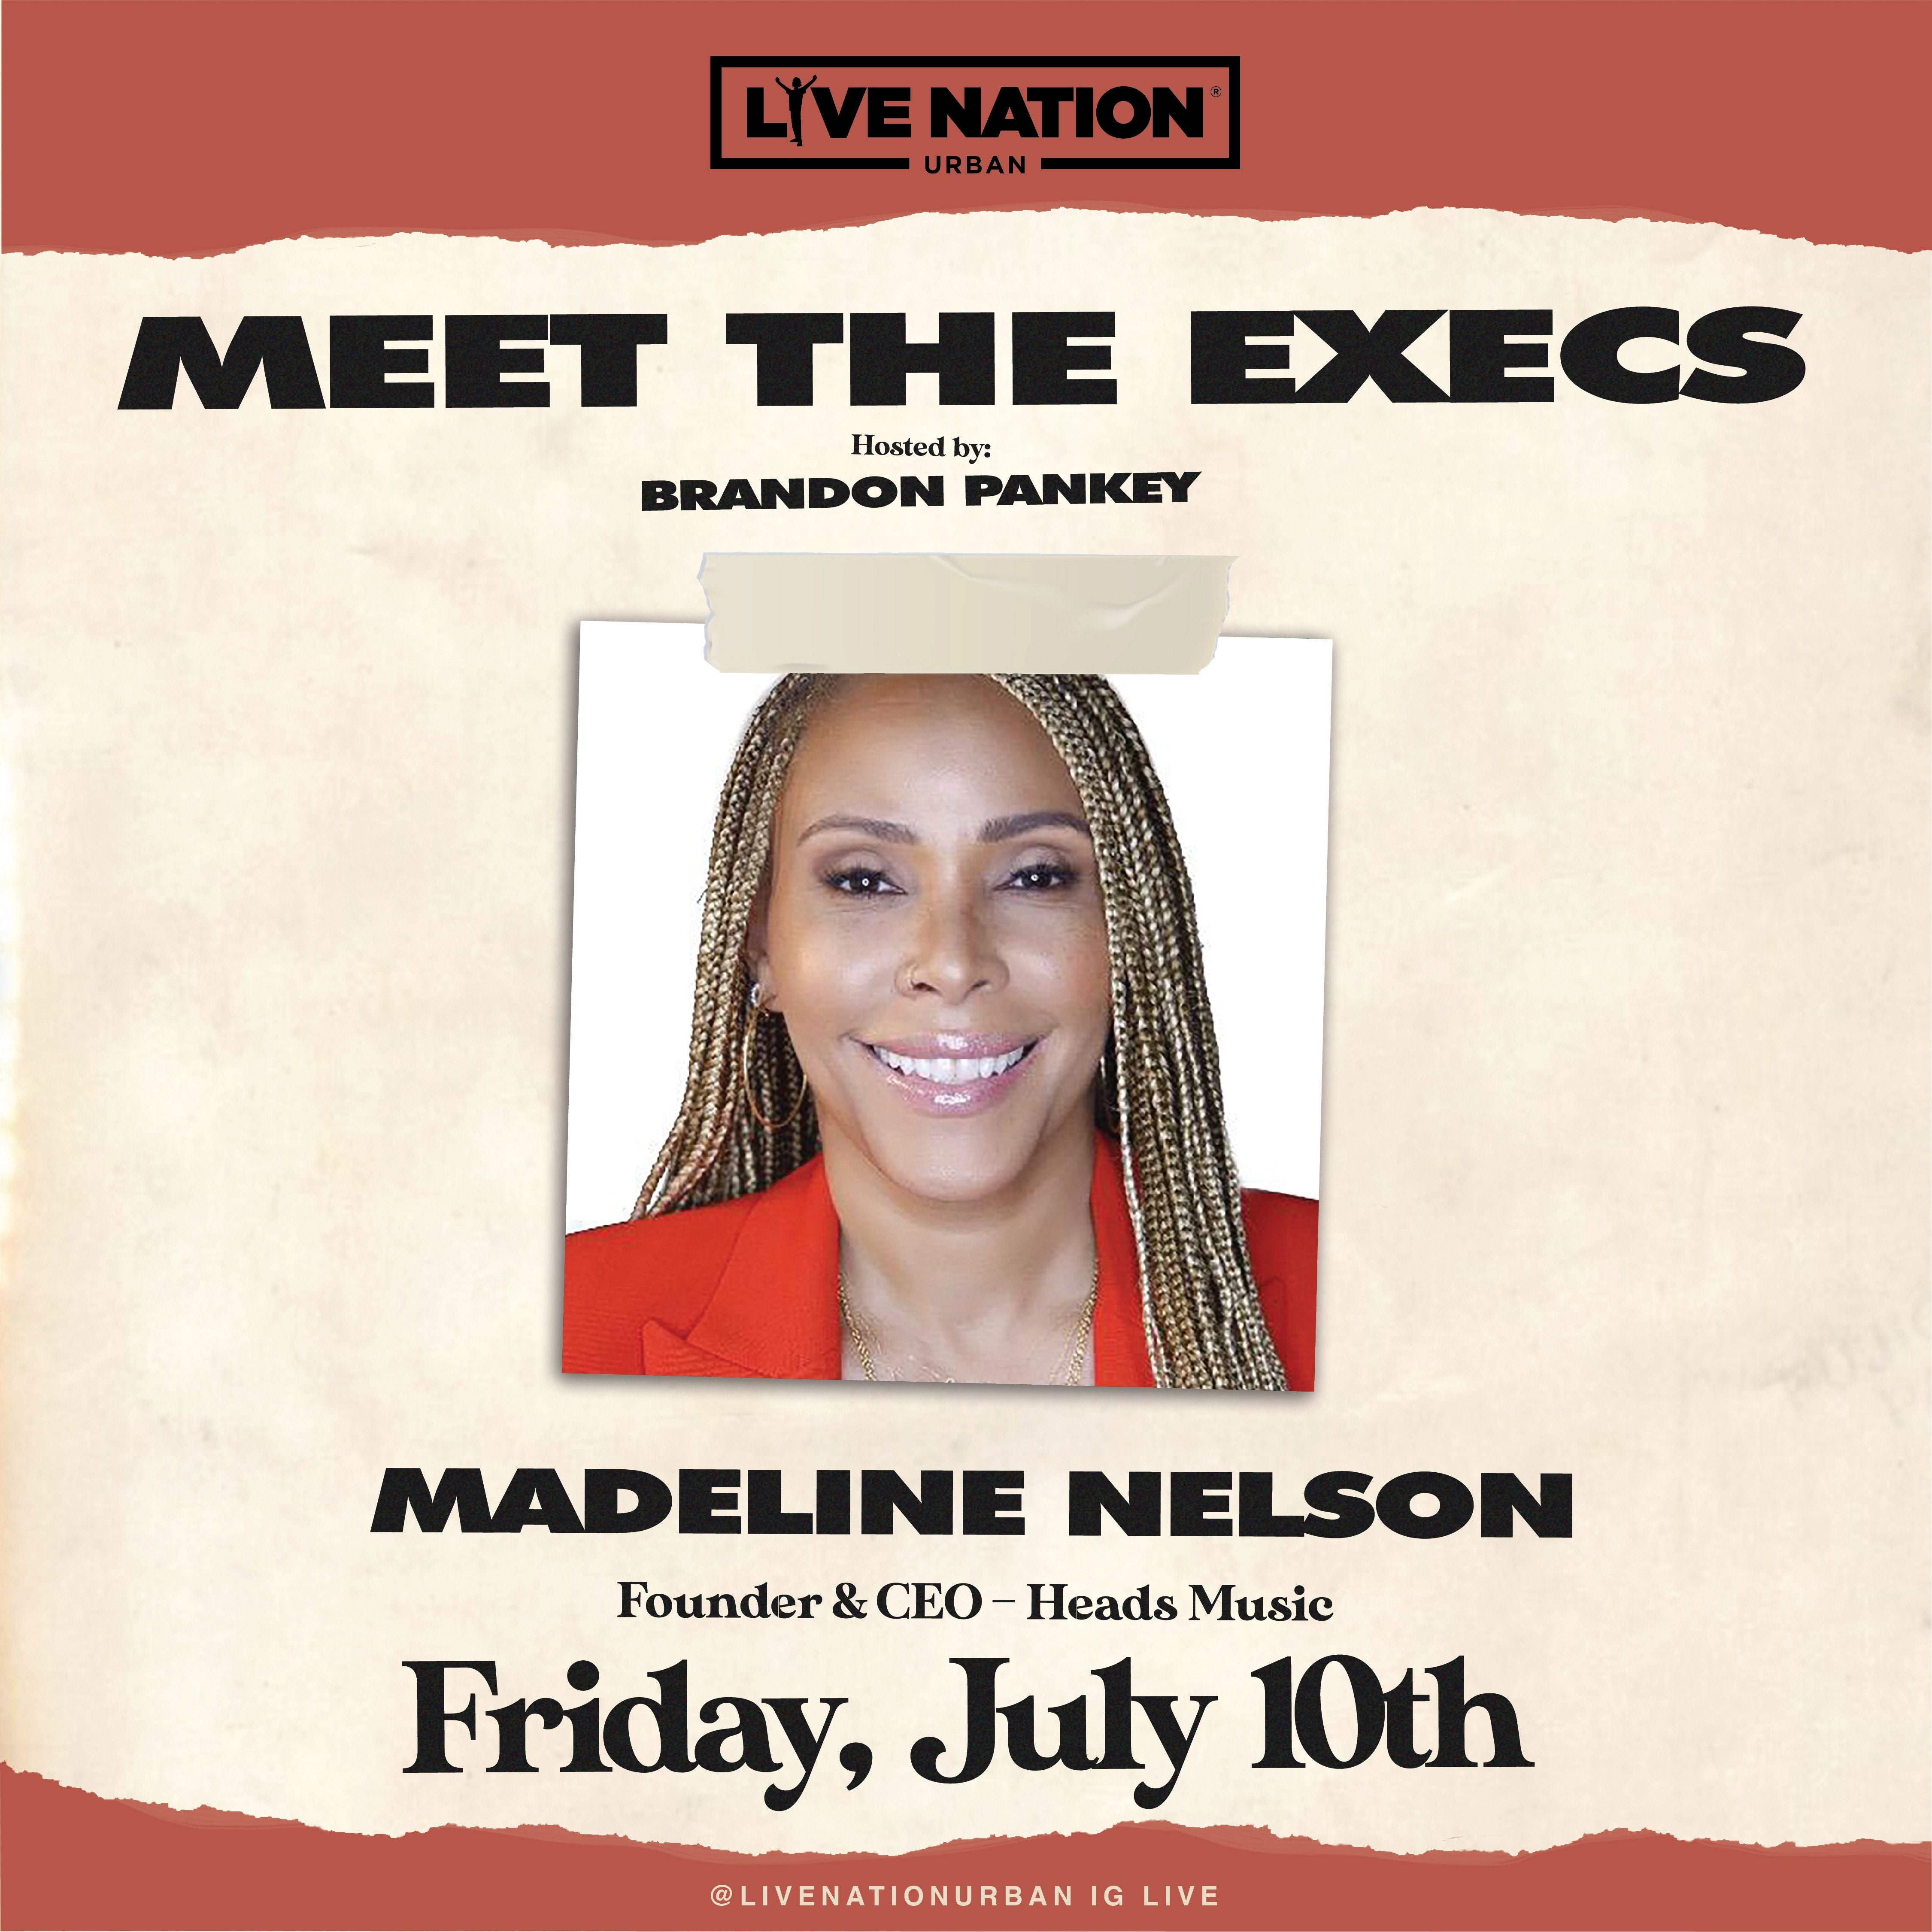 Tune In To The Live Nation Urban Series 'Meet The Execs'